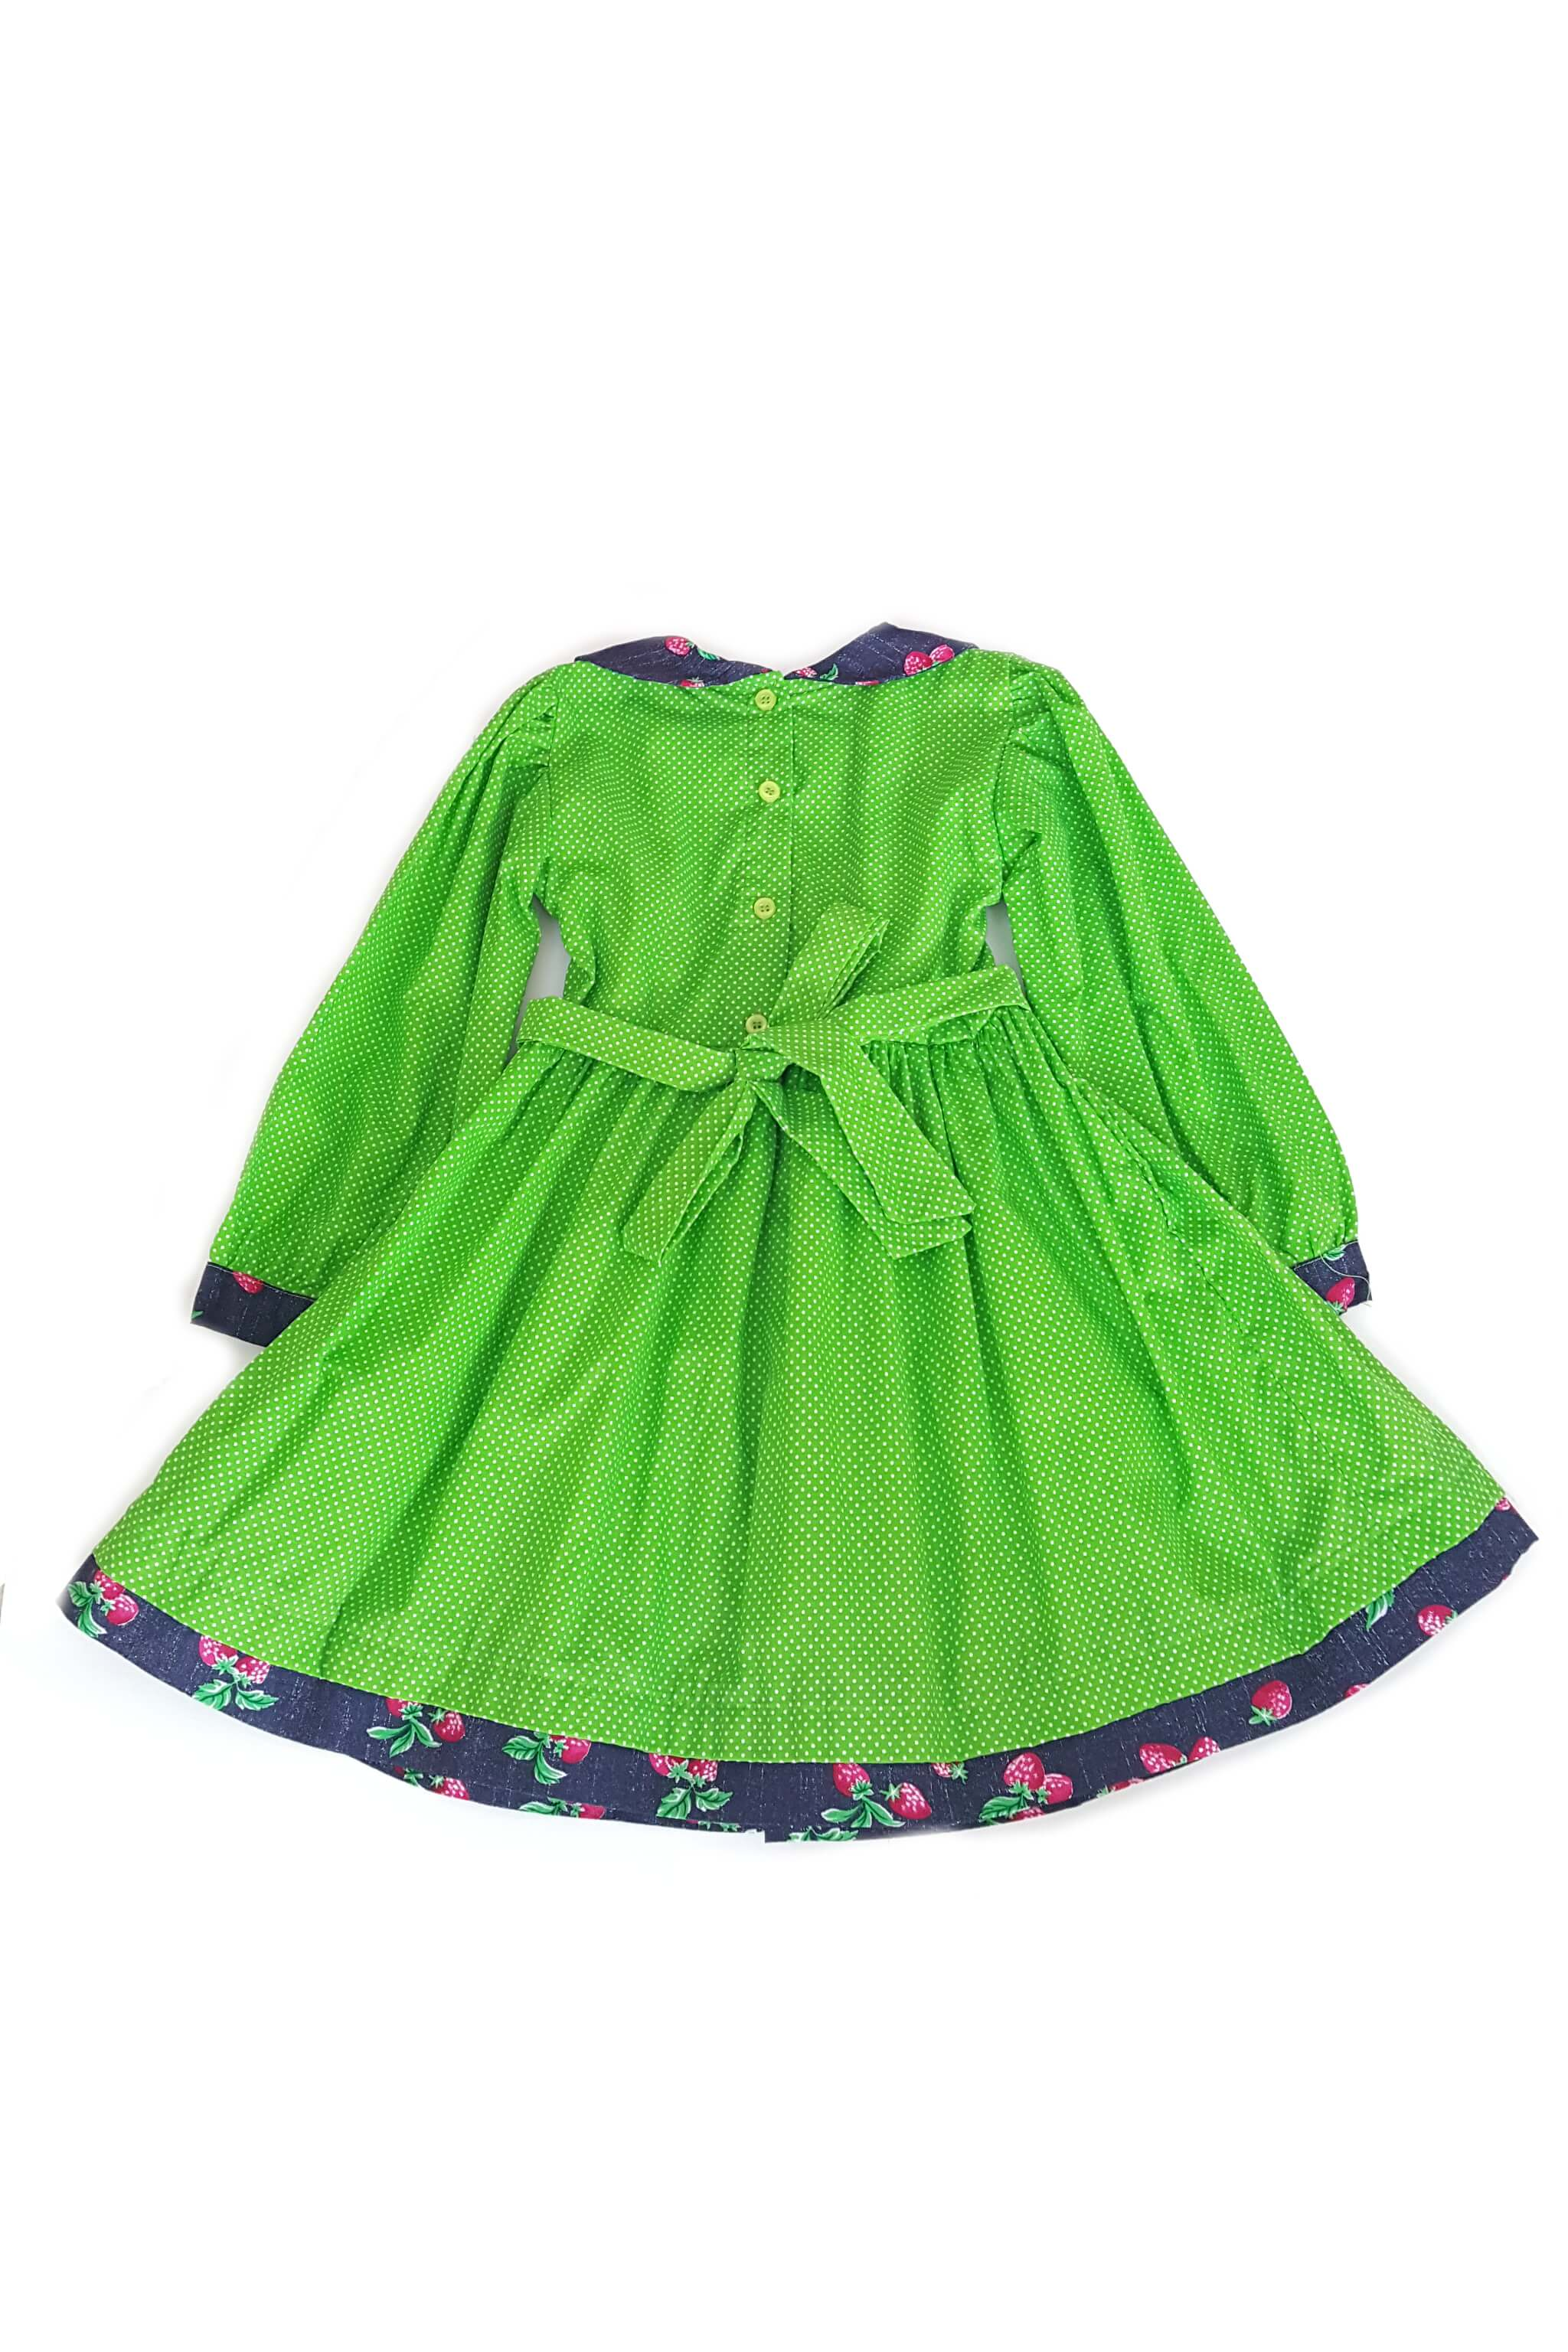 Back of long sleeved apple green pin dot Jade dress with contrasting strawberry print peter pan collar, and traditional hand-smocked bodice with button back and sash to tie at waist